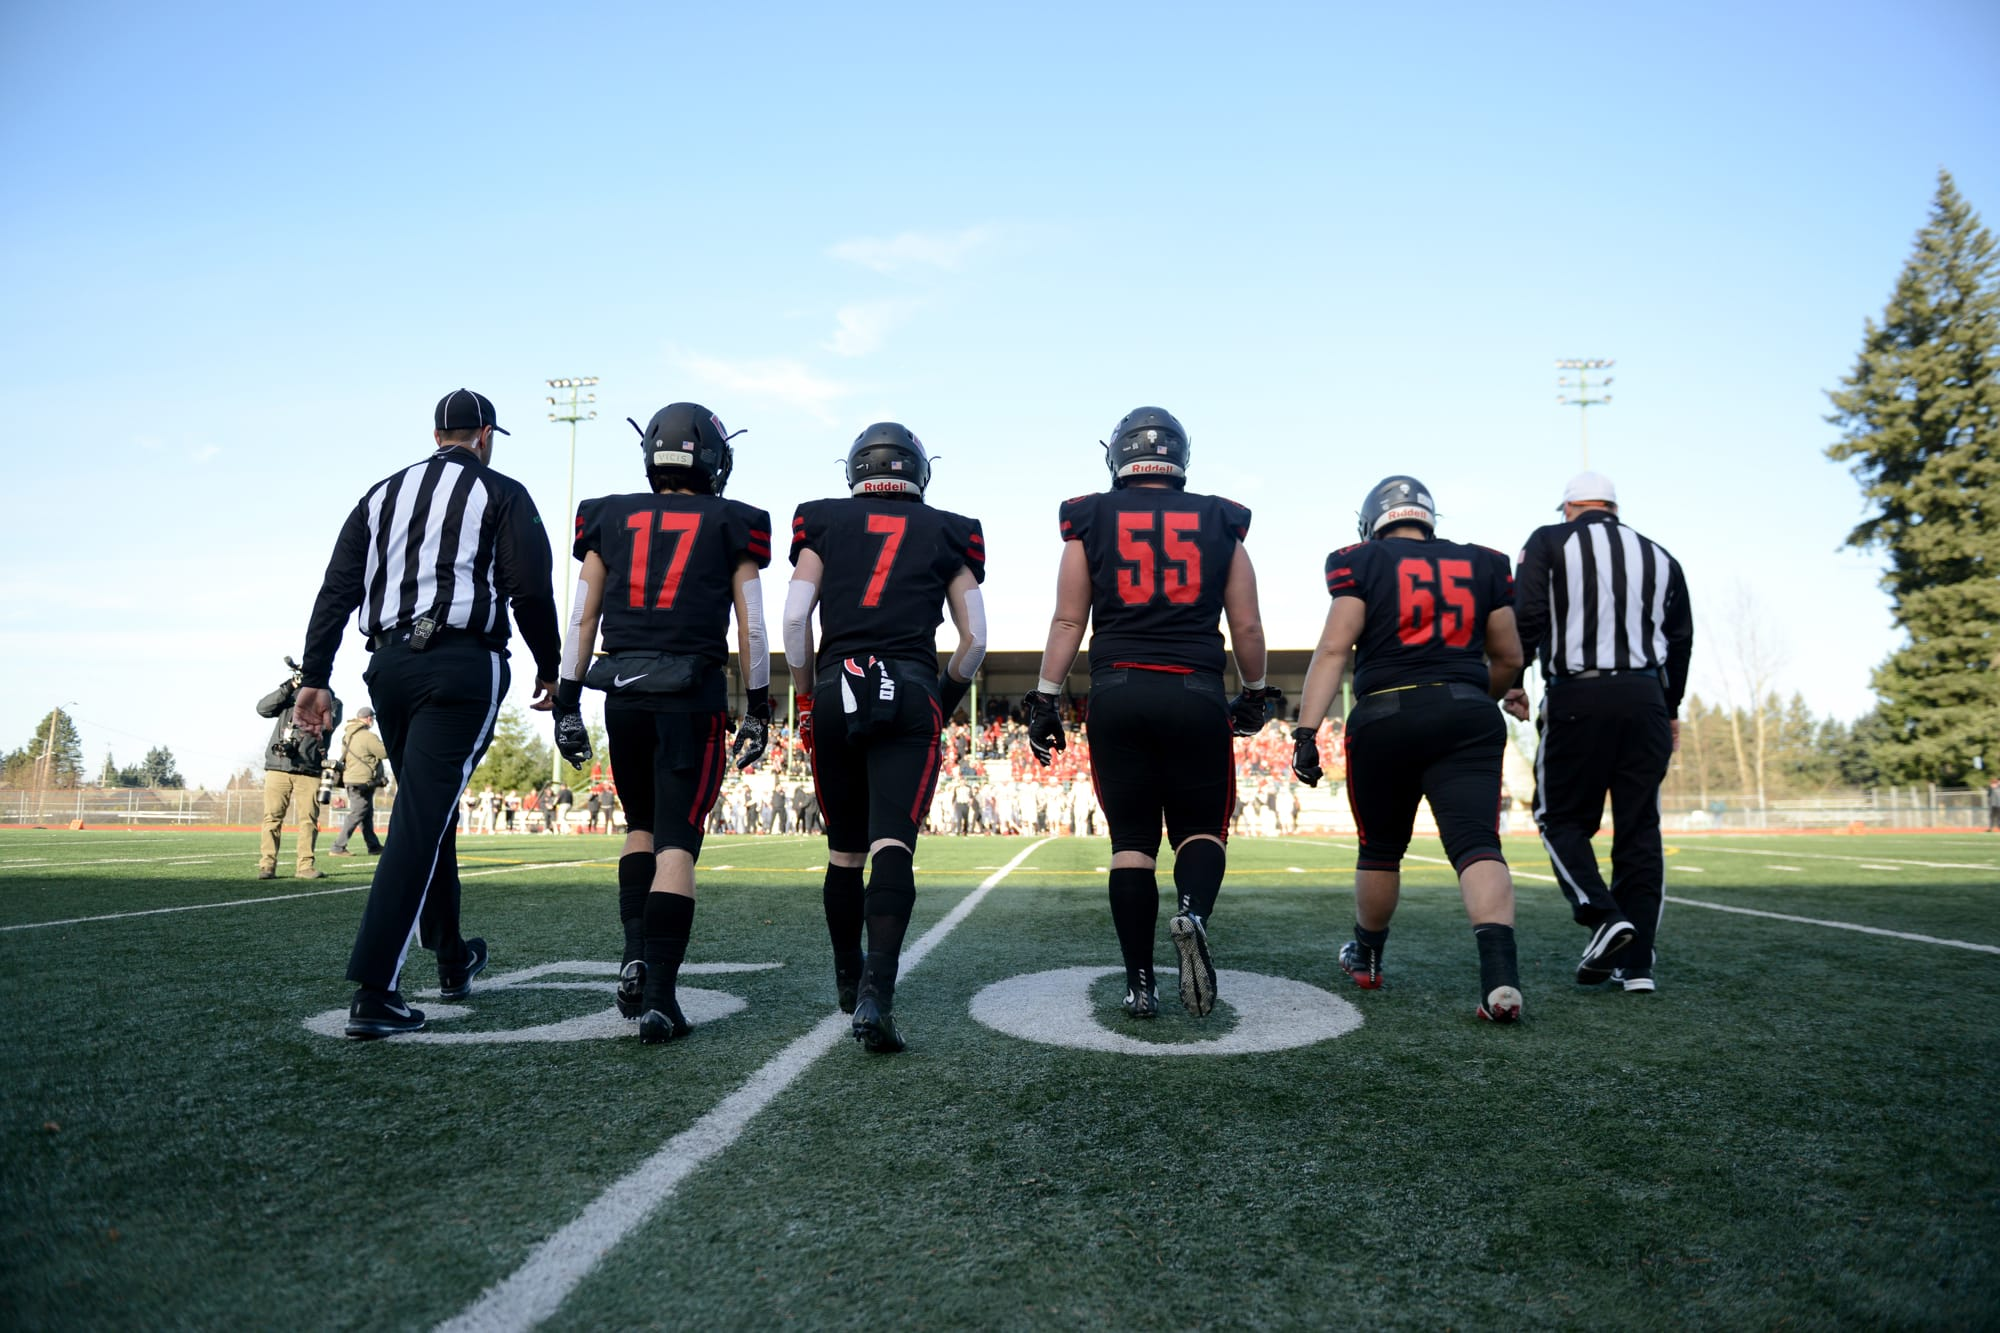 Camas football players Kolby Broadbent, left, Tyler Forner, Tristan Souza, and Tai Tumanuvao approach the coin toss before a game against Mount Si at McKenzie Stadium on Saturday afternoon, November 30, 2019. Camas beat Mount Si 35-14 to move on to the 4A state title game. (Samuel Wilson for the Columbian)